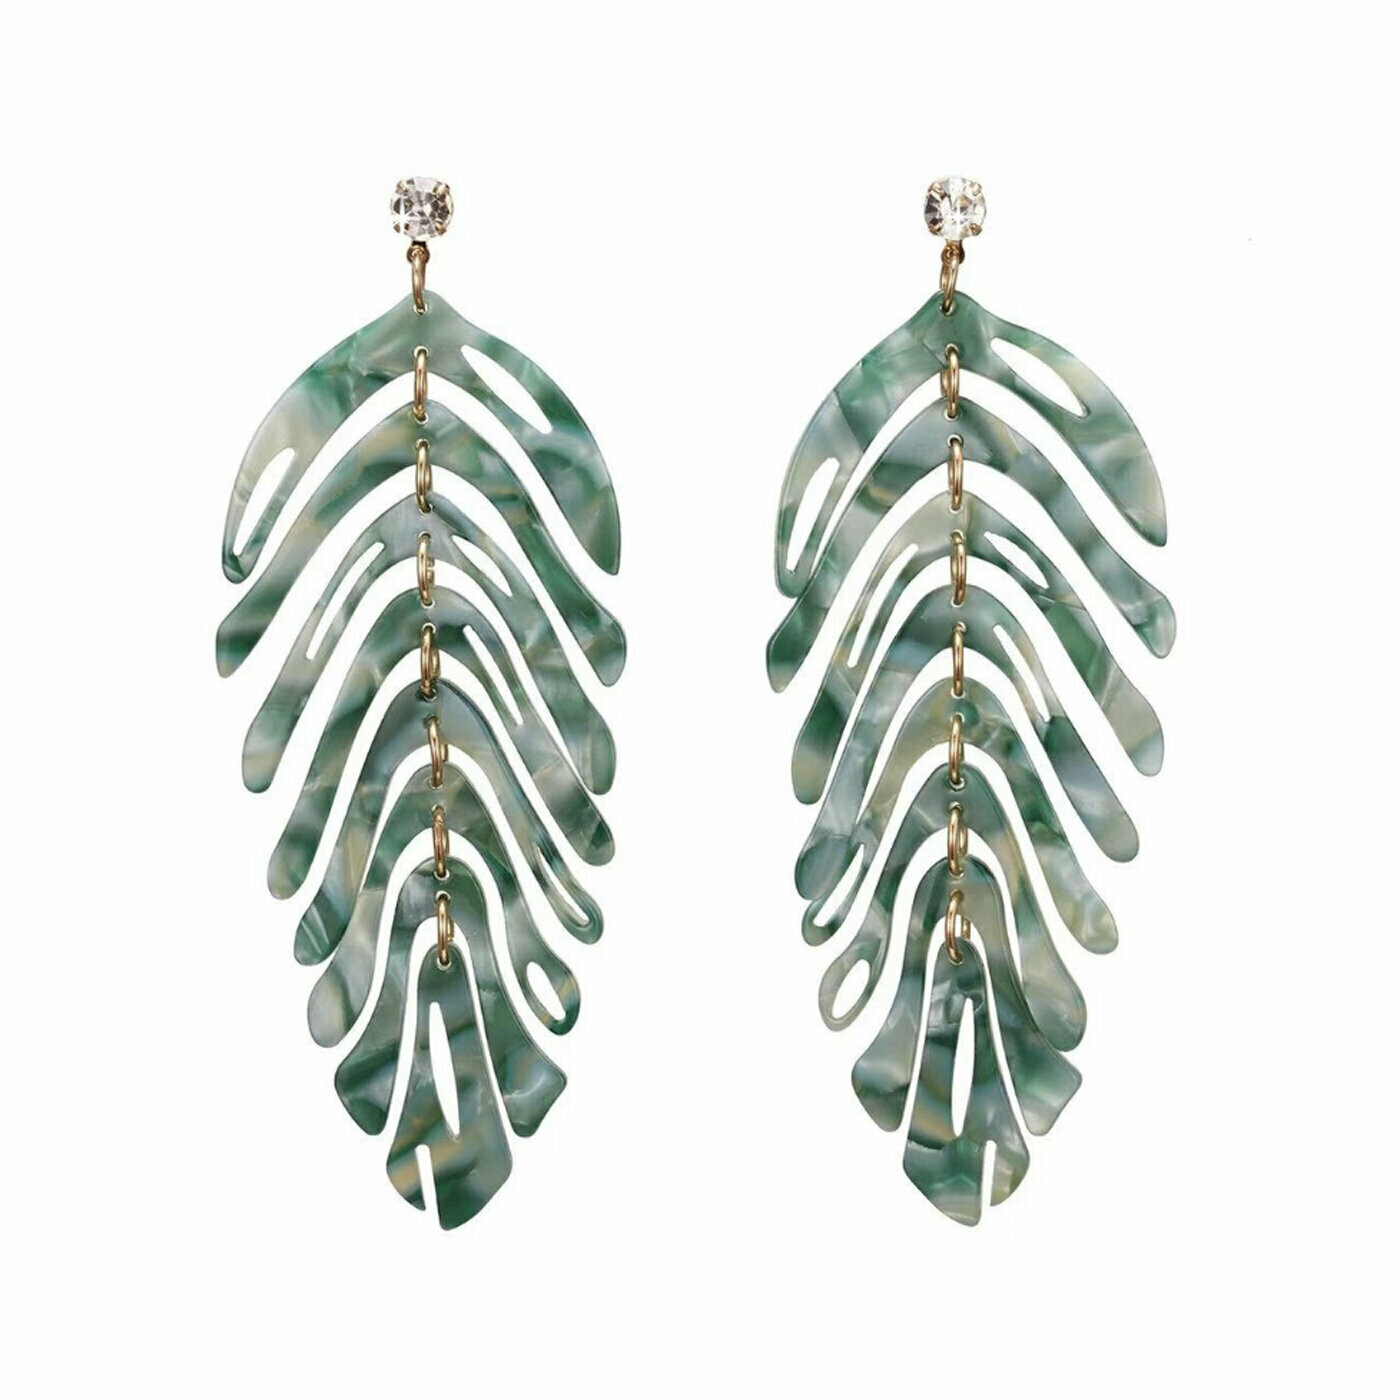 720-JKE511.GR EARRING TROPICAL LEAF GREEN